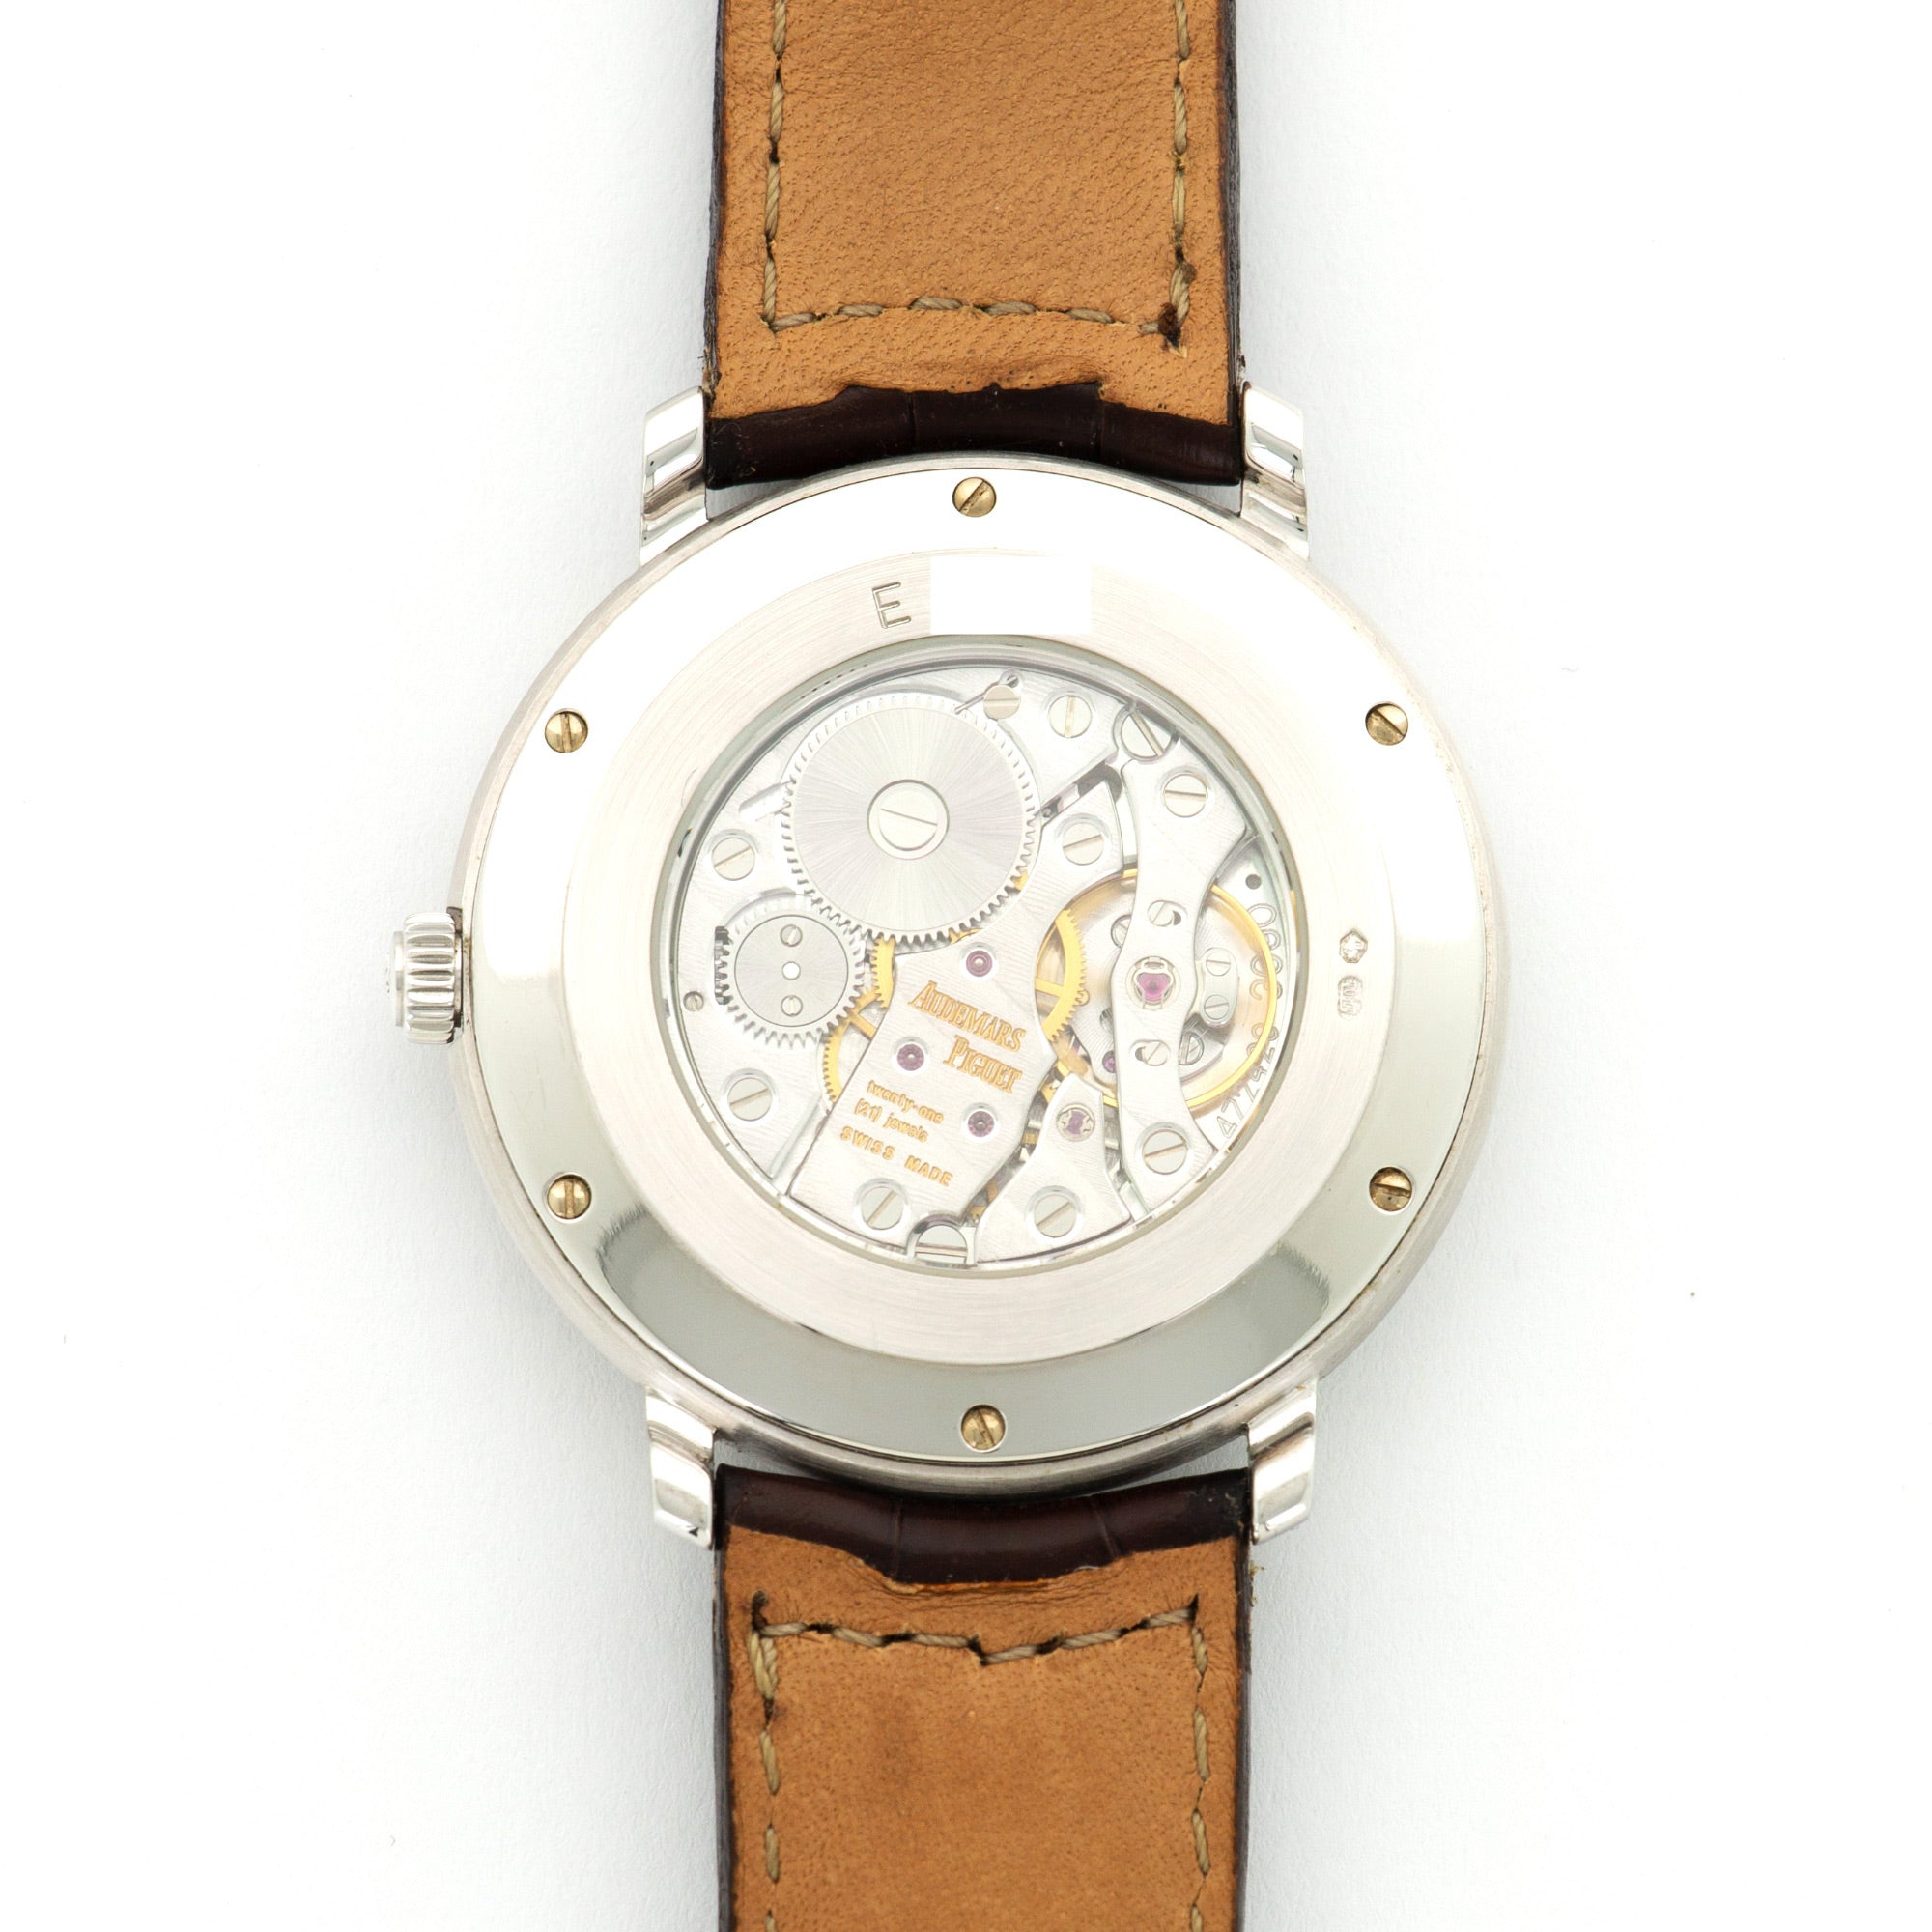 Audemars Piguet Jules Audemars 15056BC.OO.A001CR.01 18k WG  Excellent Unisex 18k WG Silver 36mm Manual 2000s Brown Leather Strap Leather Travel Case